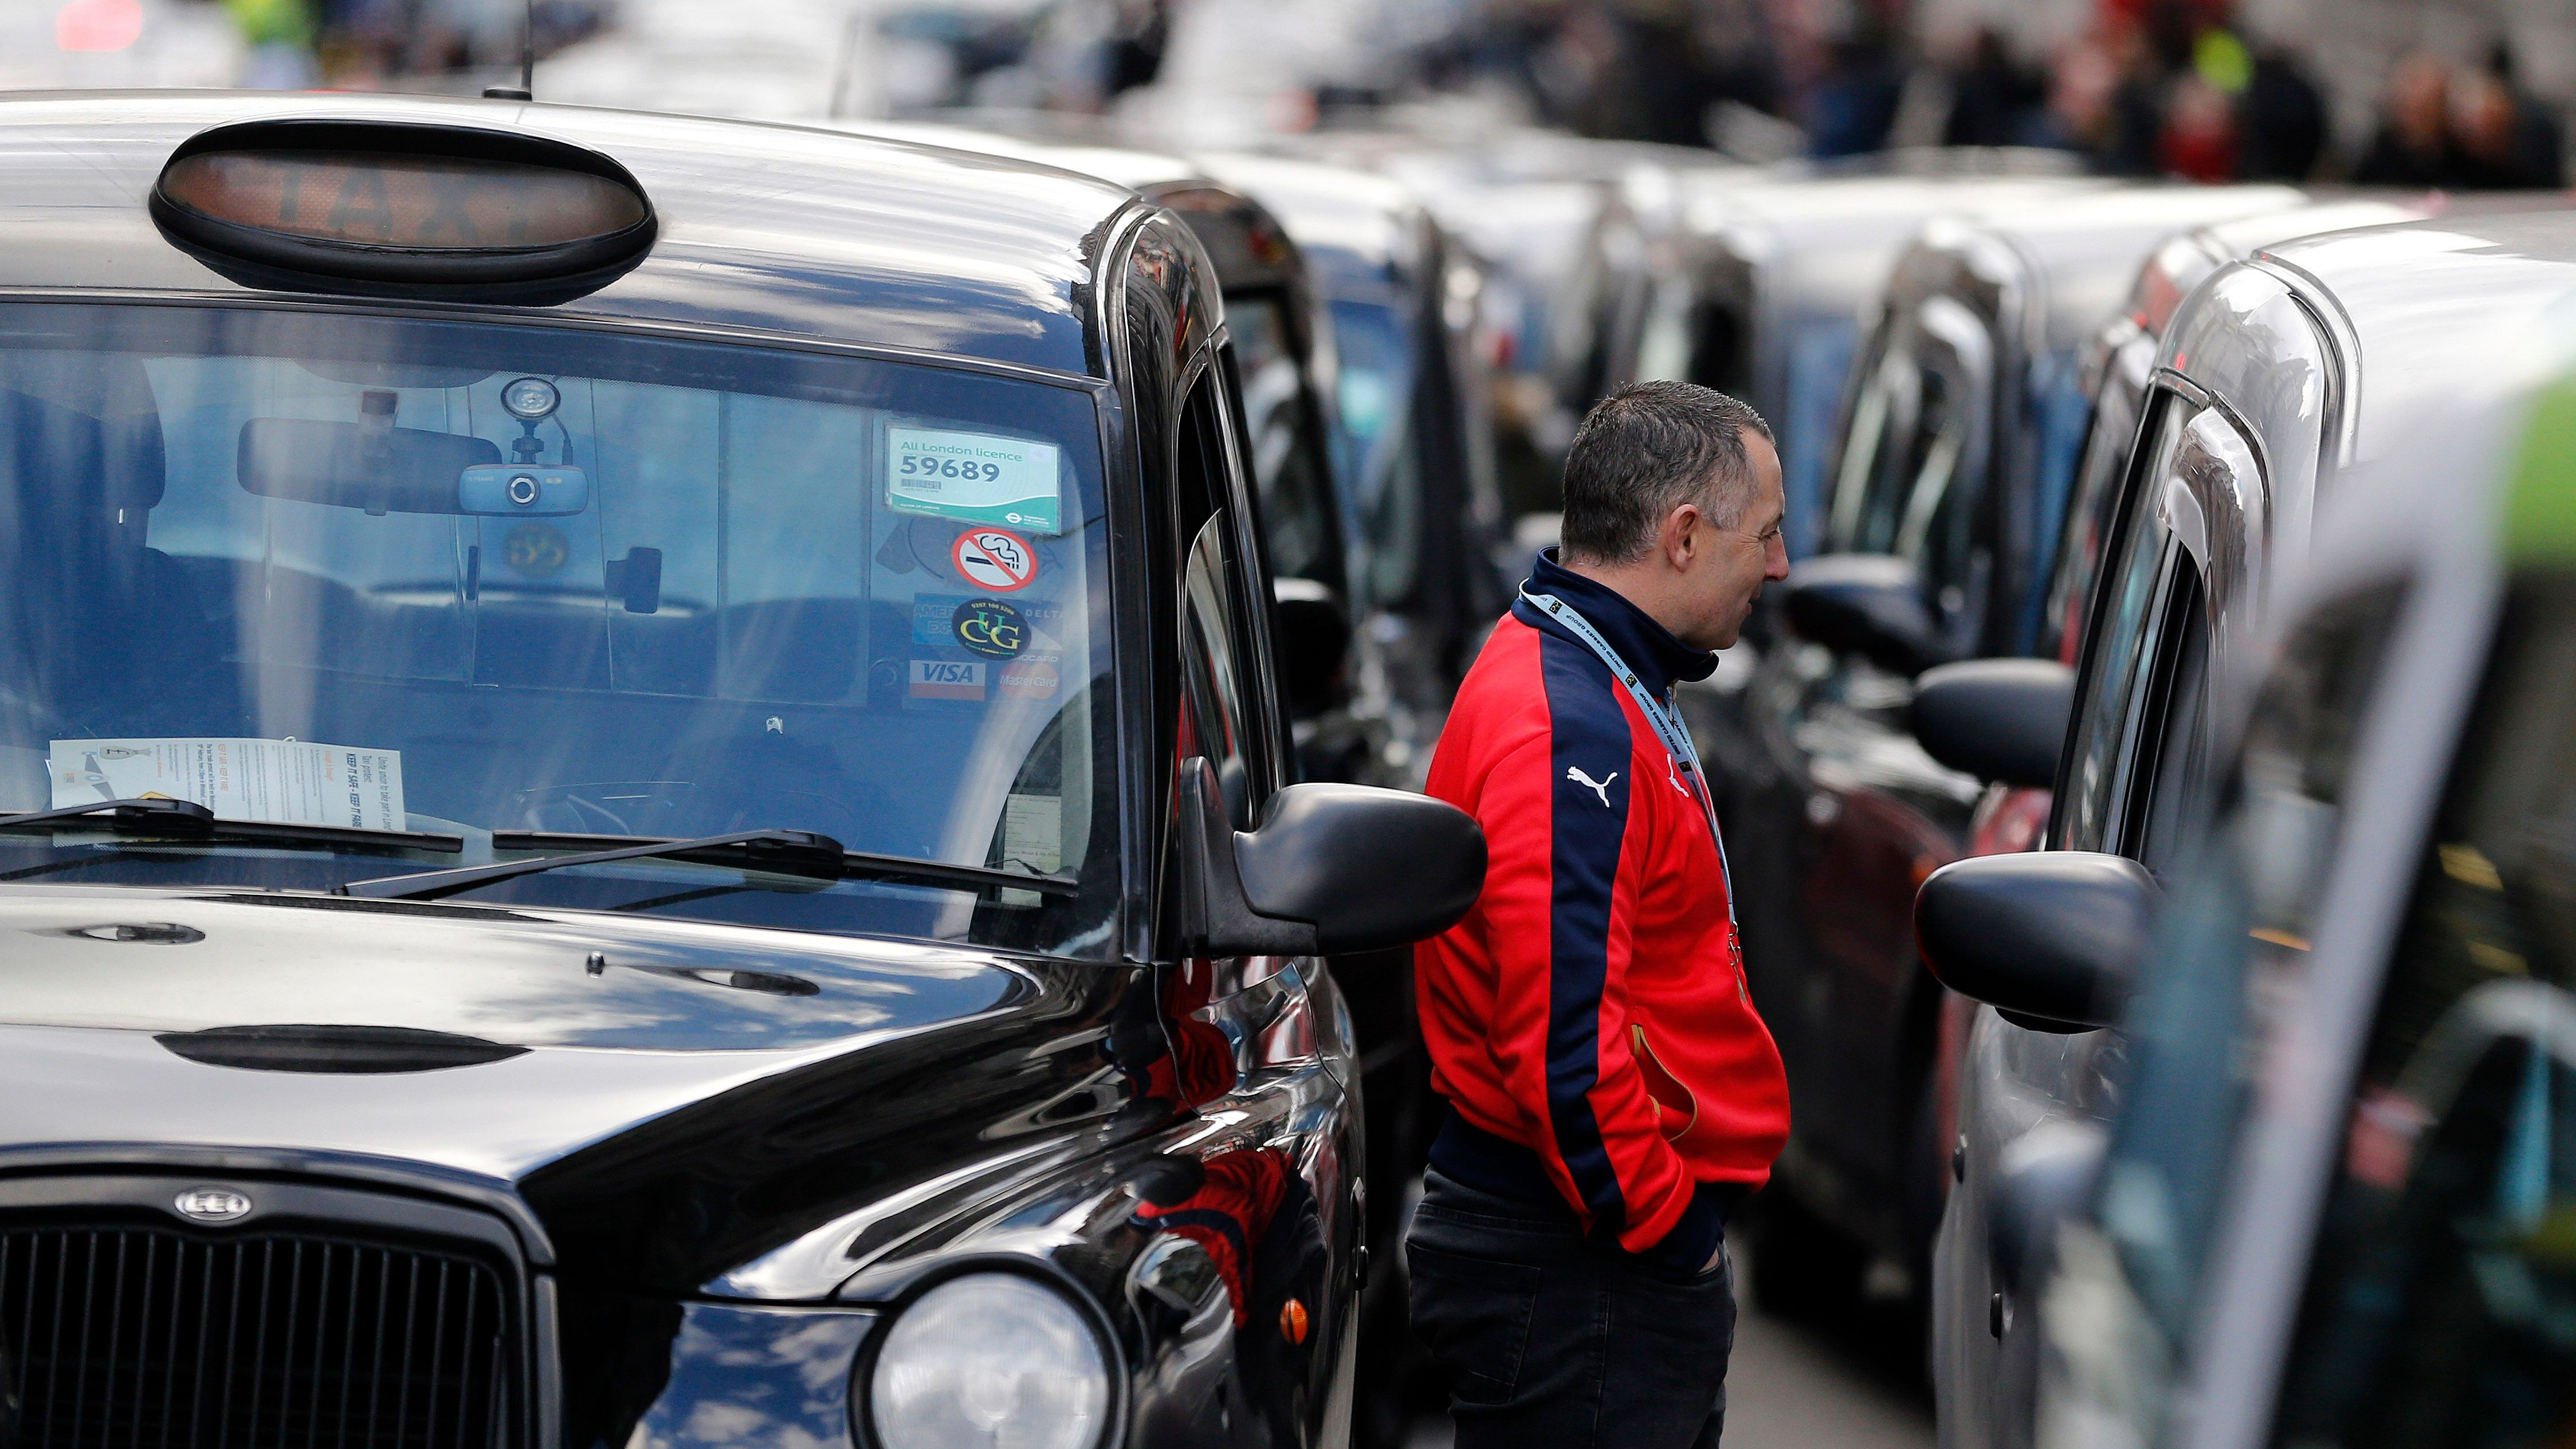 London taxis block the roads in central London, Wednesday, Feb. 10, 2016. Drivers are concerned with unfair competition from services such as Uber. (AP Photo/Frank Augstein)